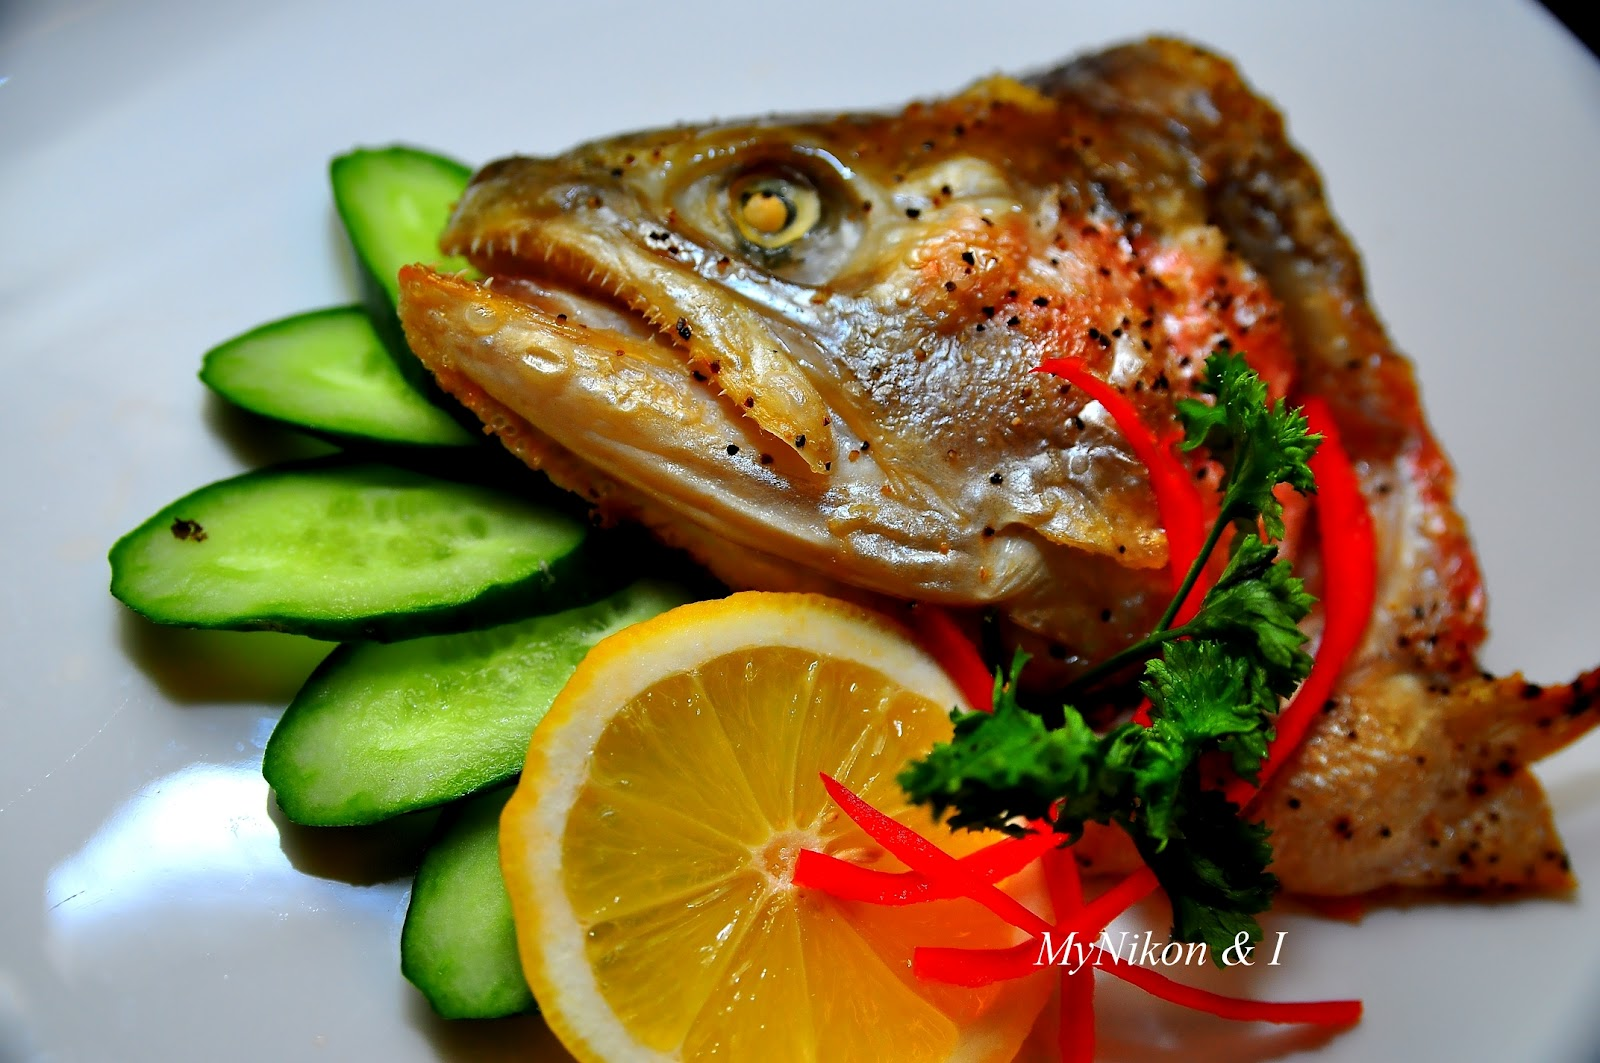 Oven Grill Salmon Head With Salt